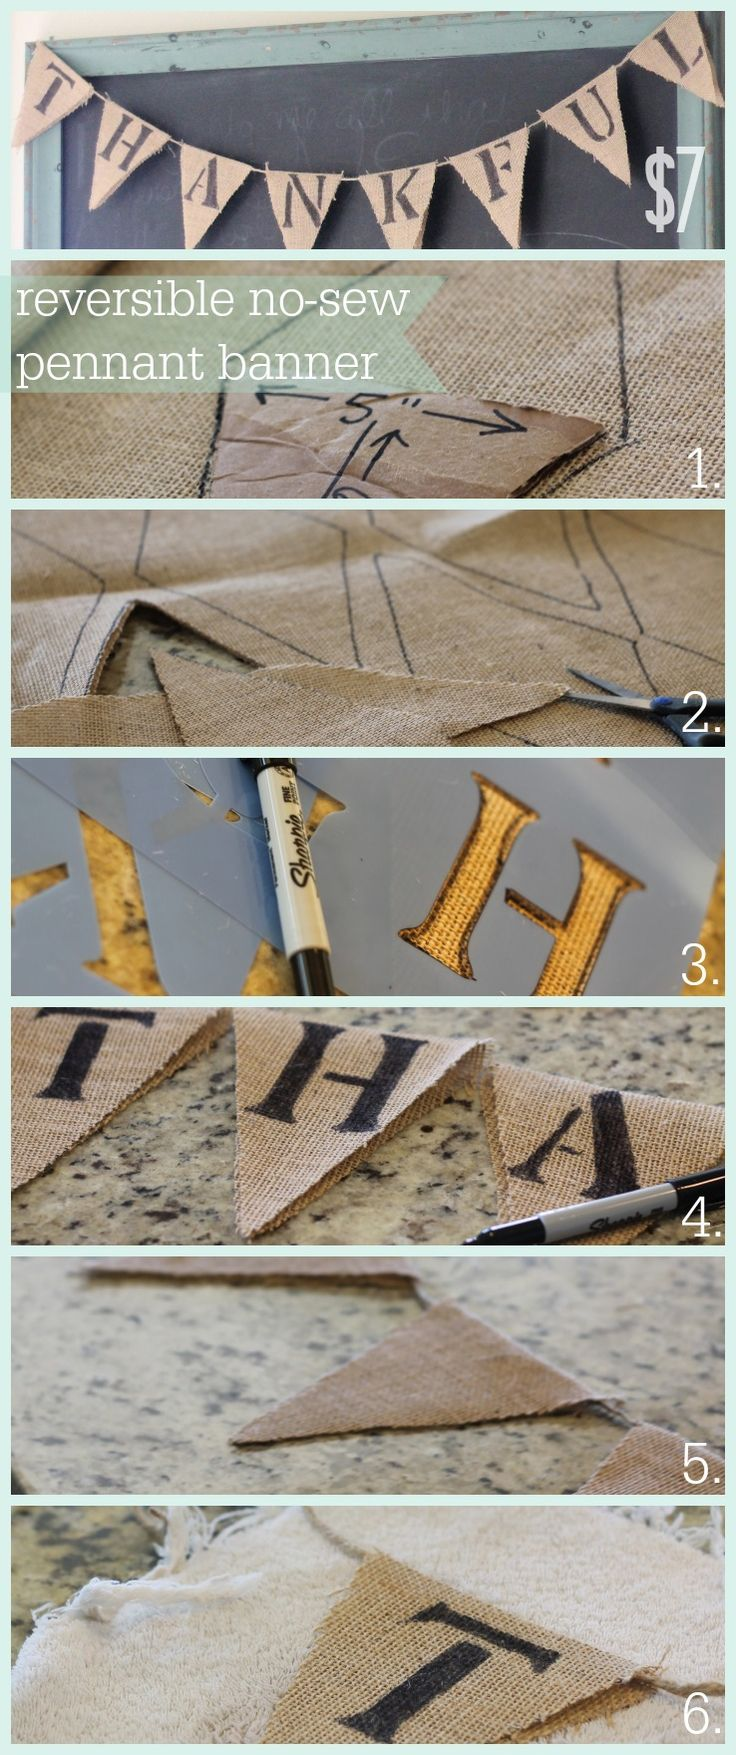 Super easy burlap pennant banner - only $7! All you need is burlap, a sharpie marker, a letter stencil and hot glue gun. Perfect for fall!